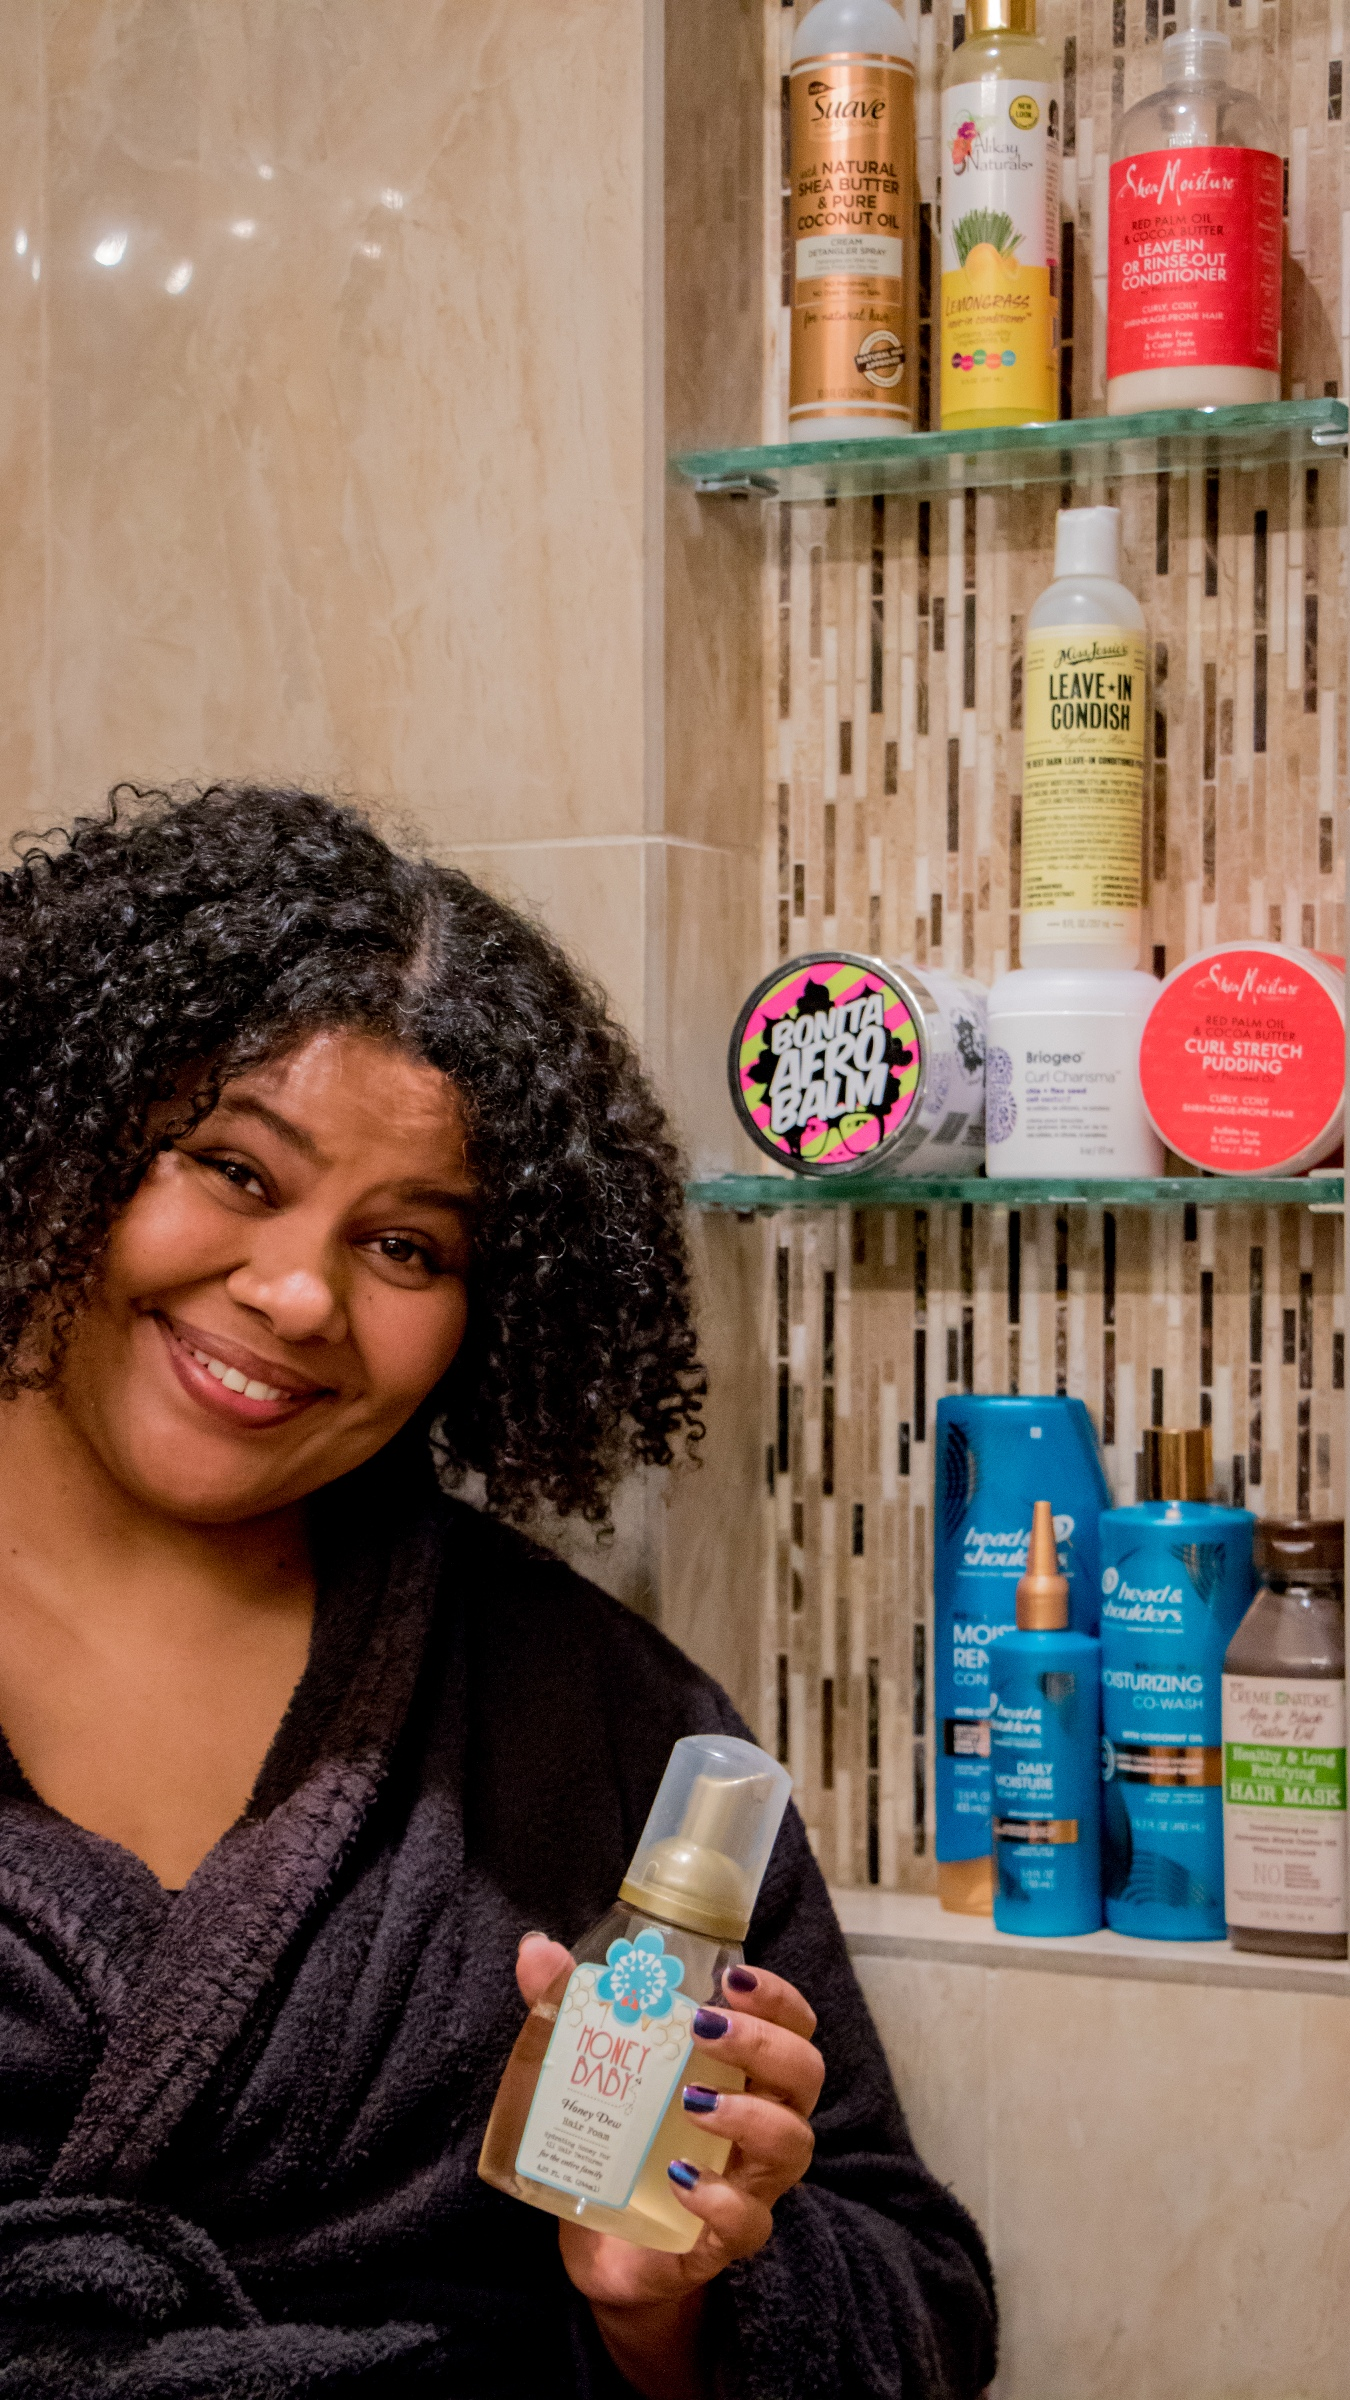 Fall to Winter Haircare – Everything I Need Is at Walmart's The Curl Shop!